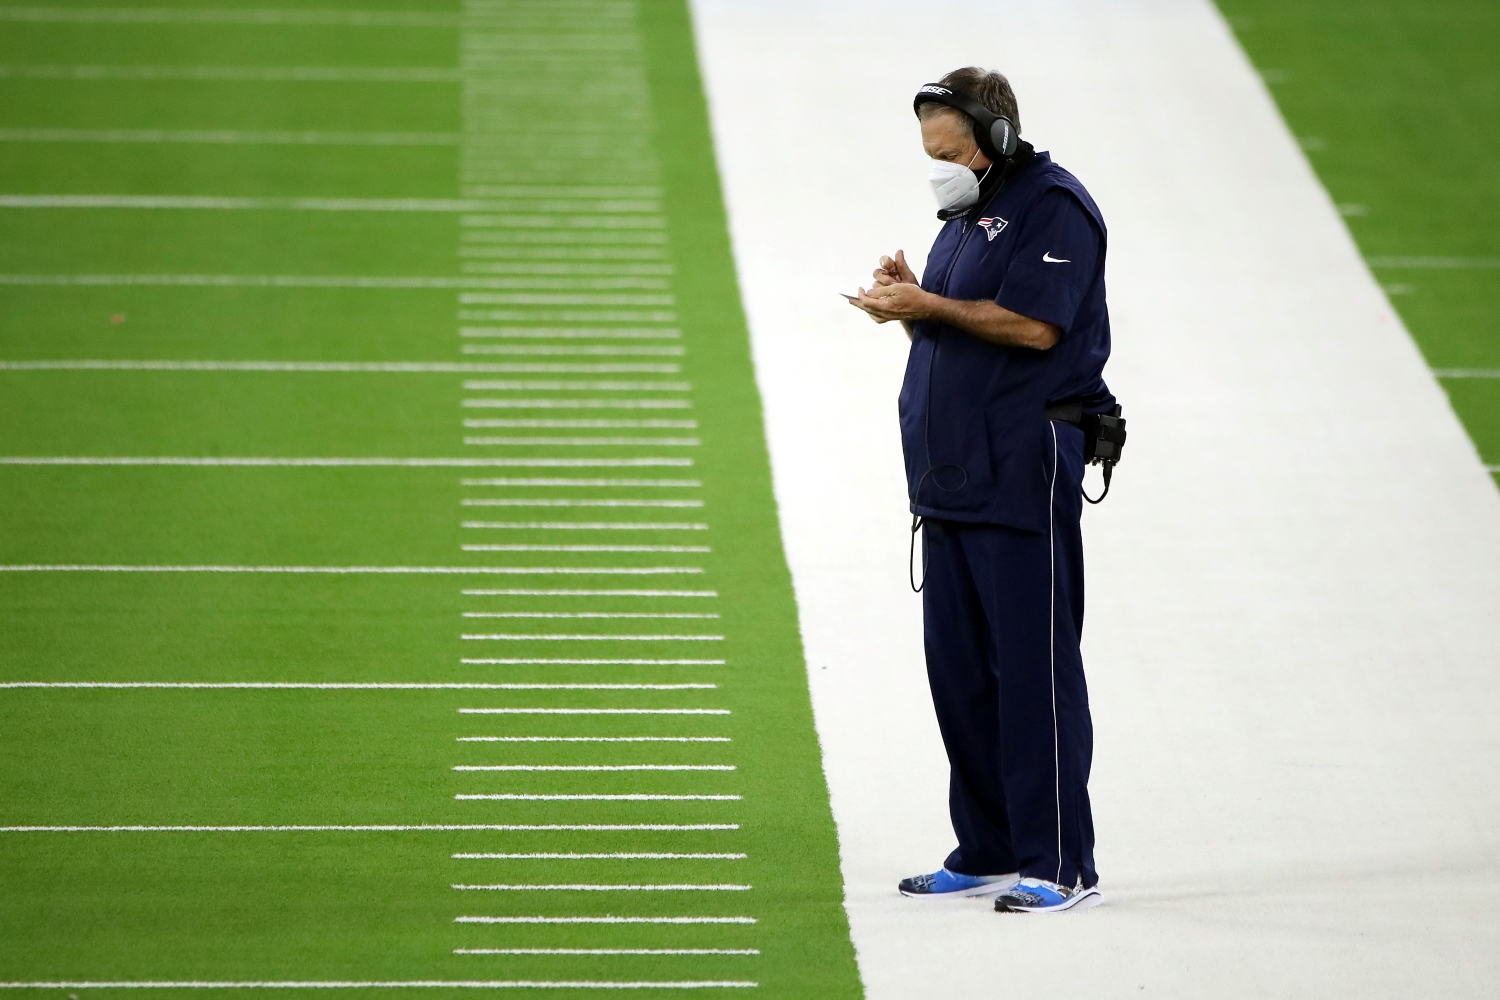 Patriots head coach Bill Belichick stands on the sidelines during the first quarter of a 2020 game against the LA Rams.